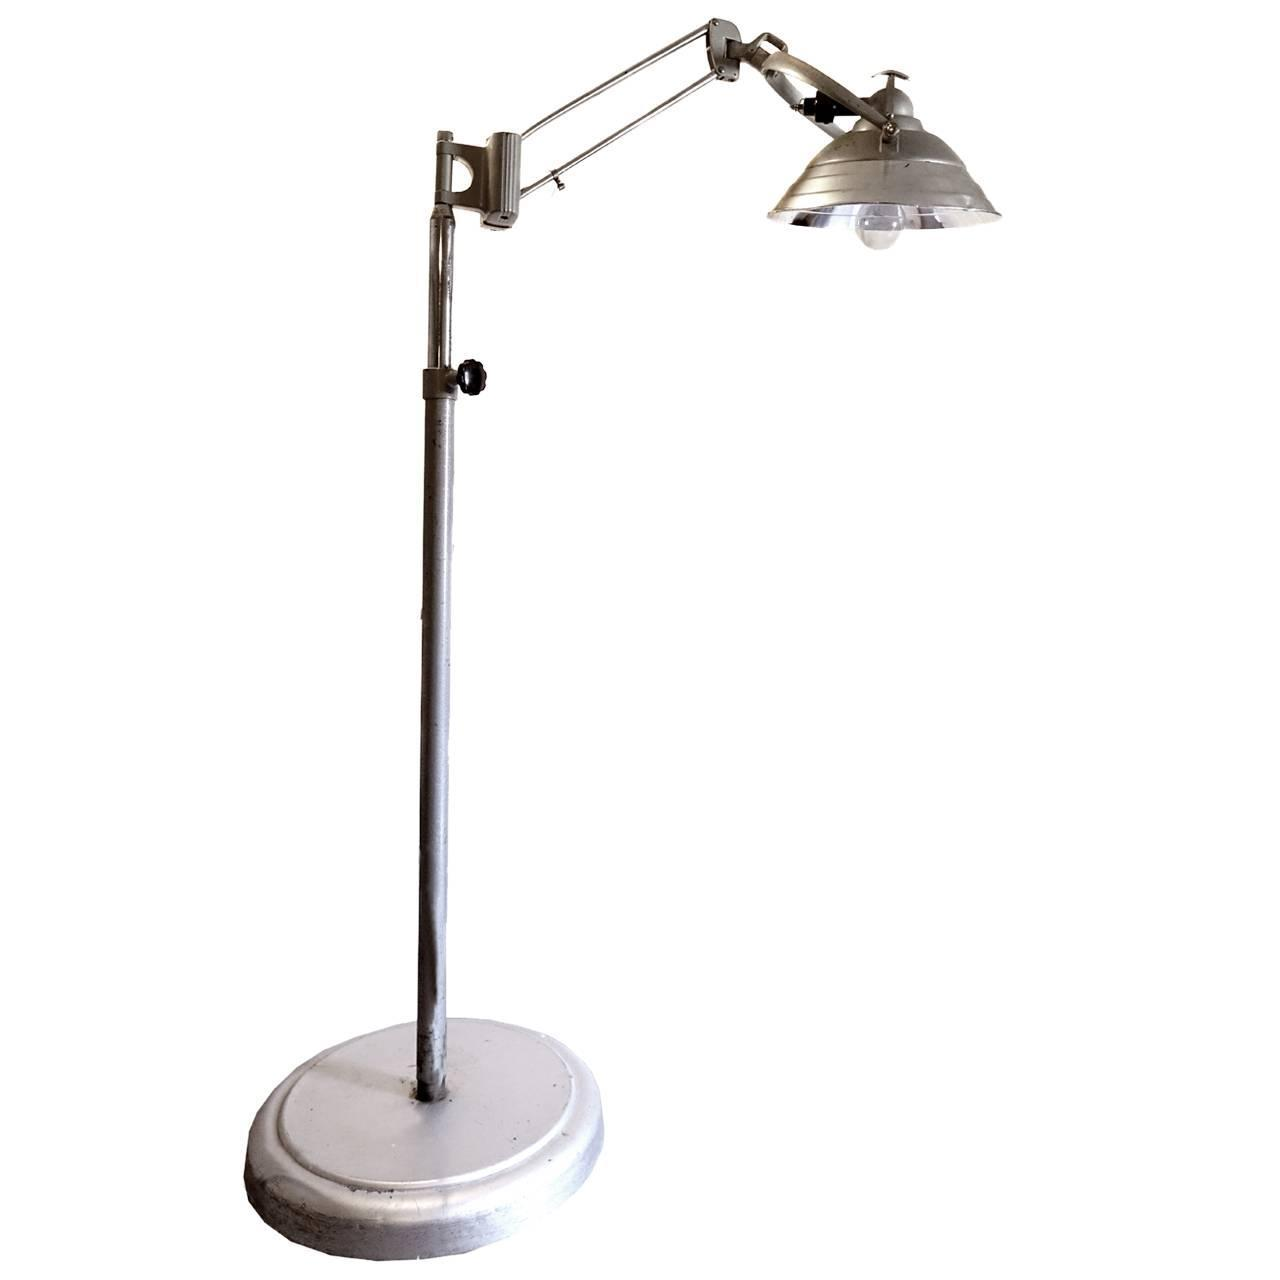 Large rolling articulated arm operating room lamp at 1stdibs for Led articulated floor lamp